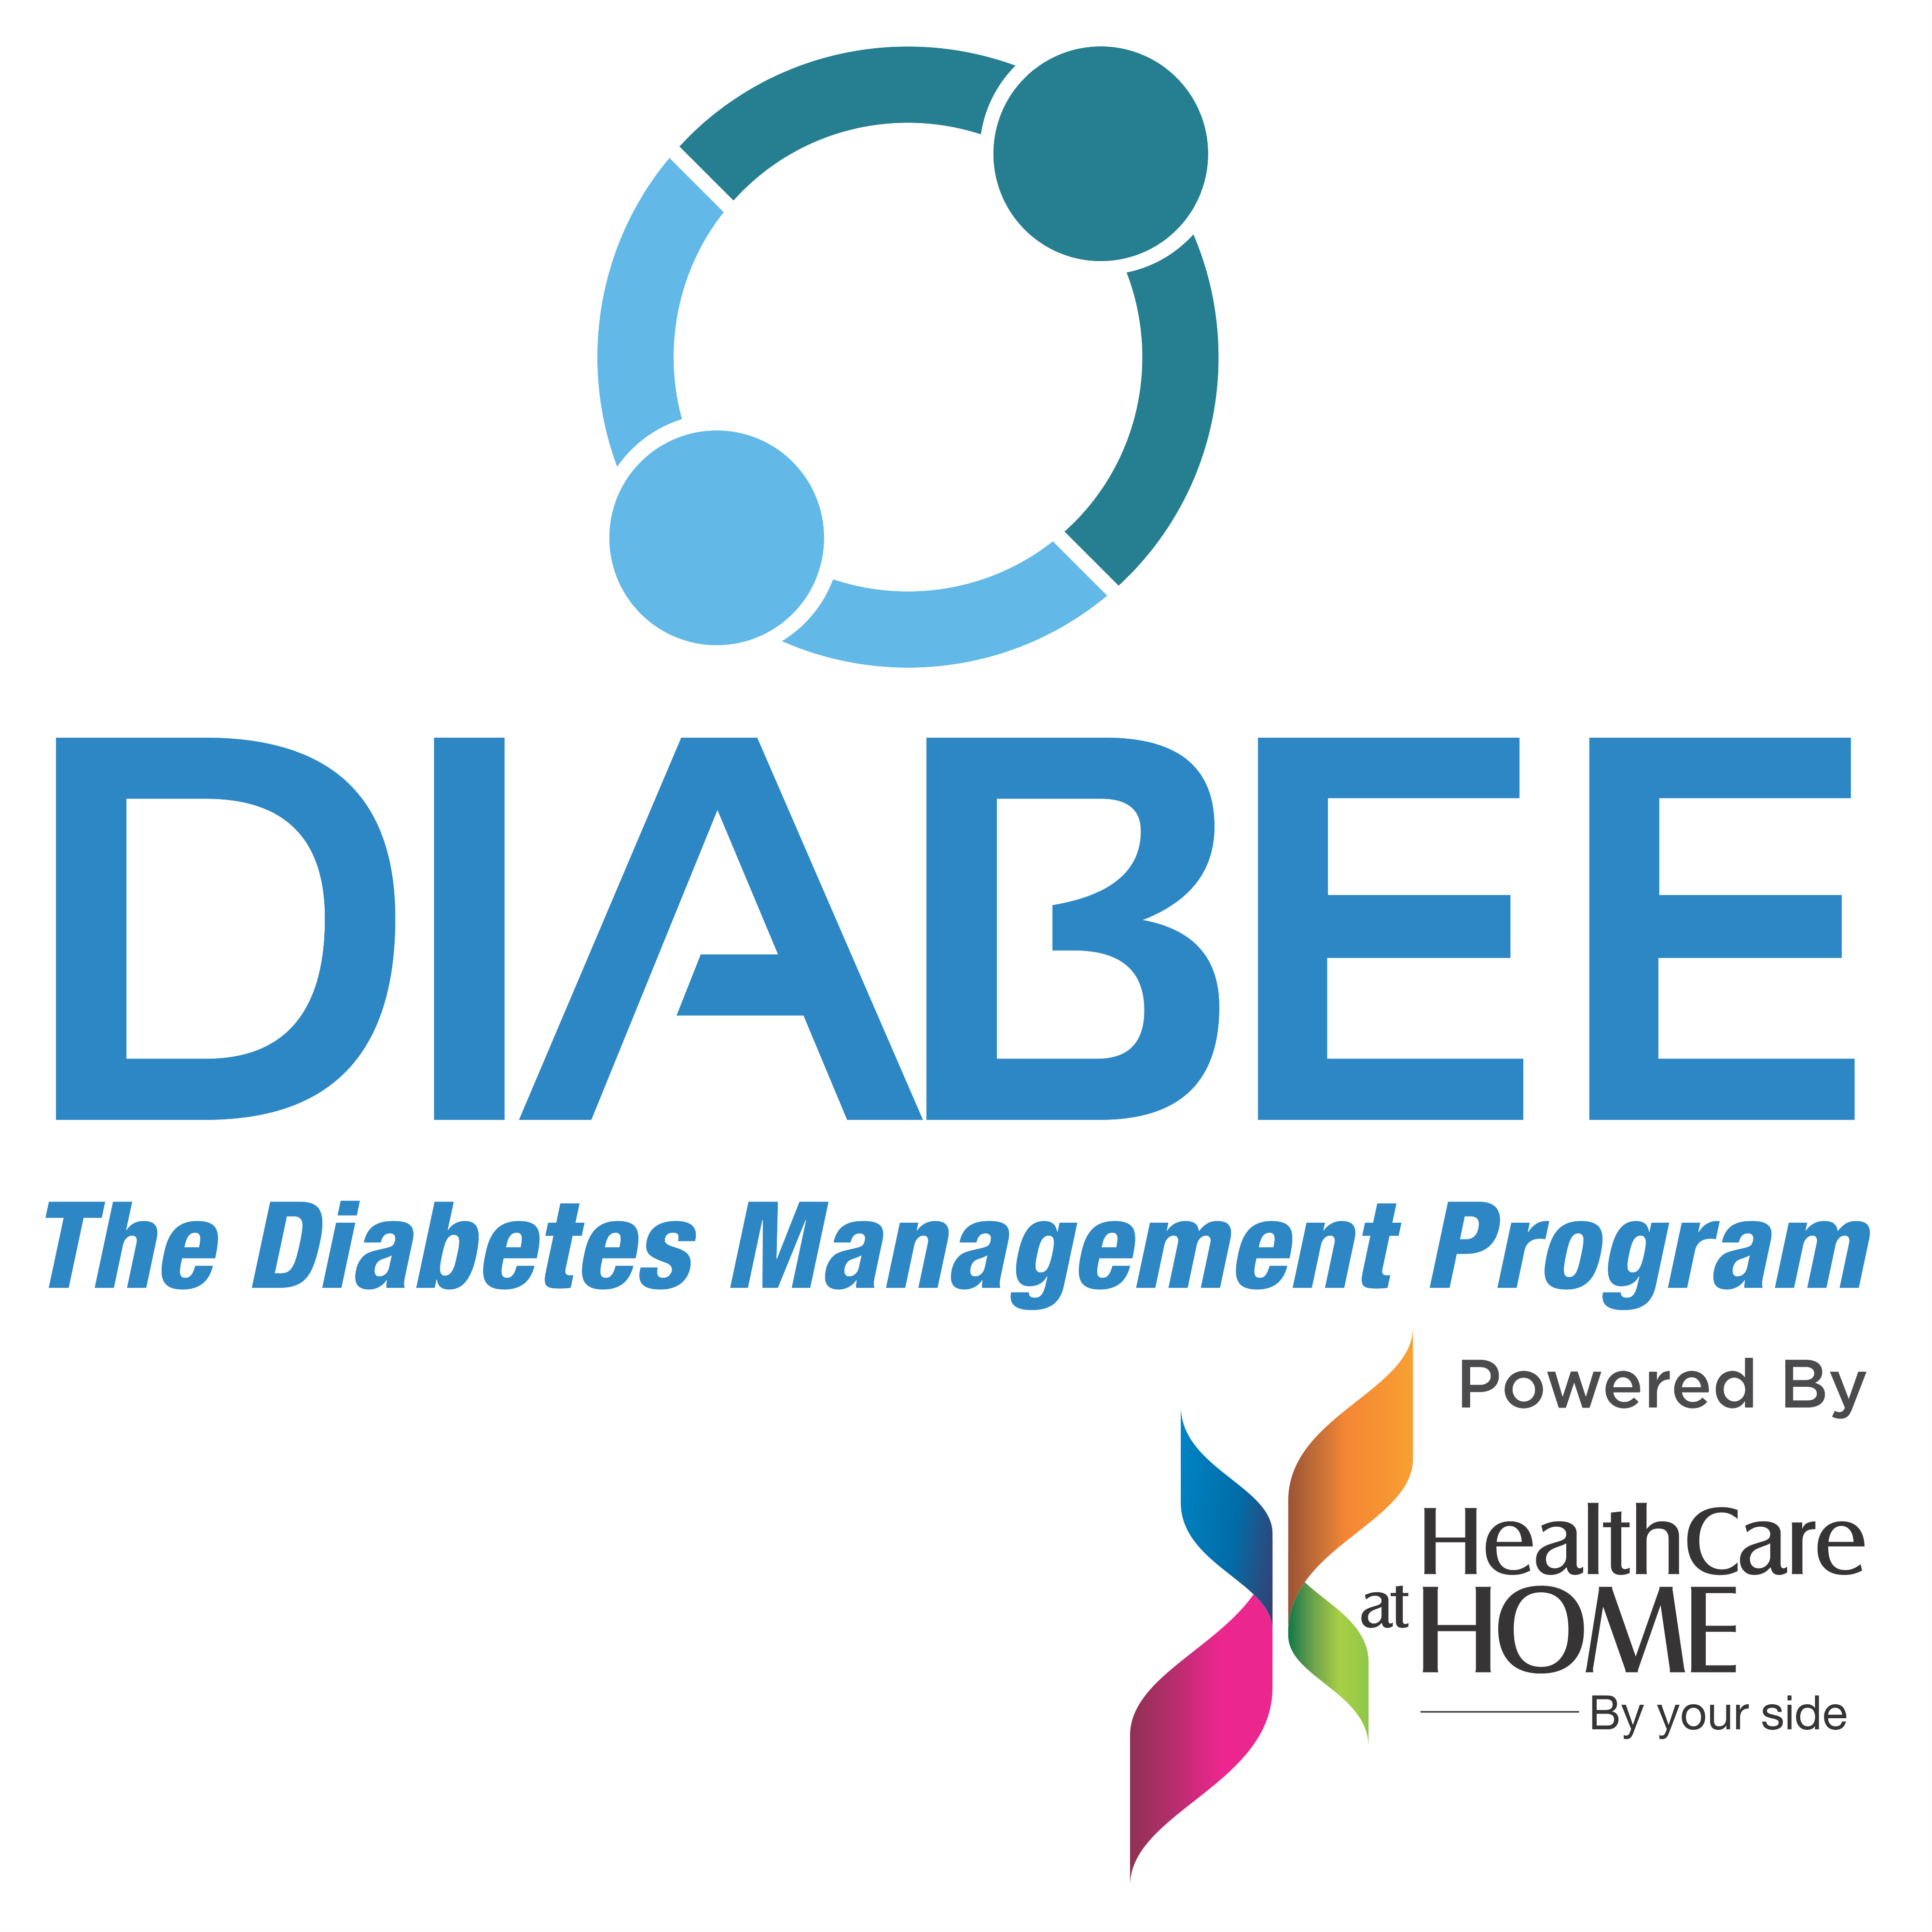 Diabee by HealthCare atHOME